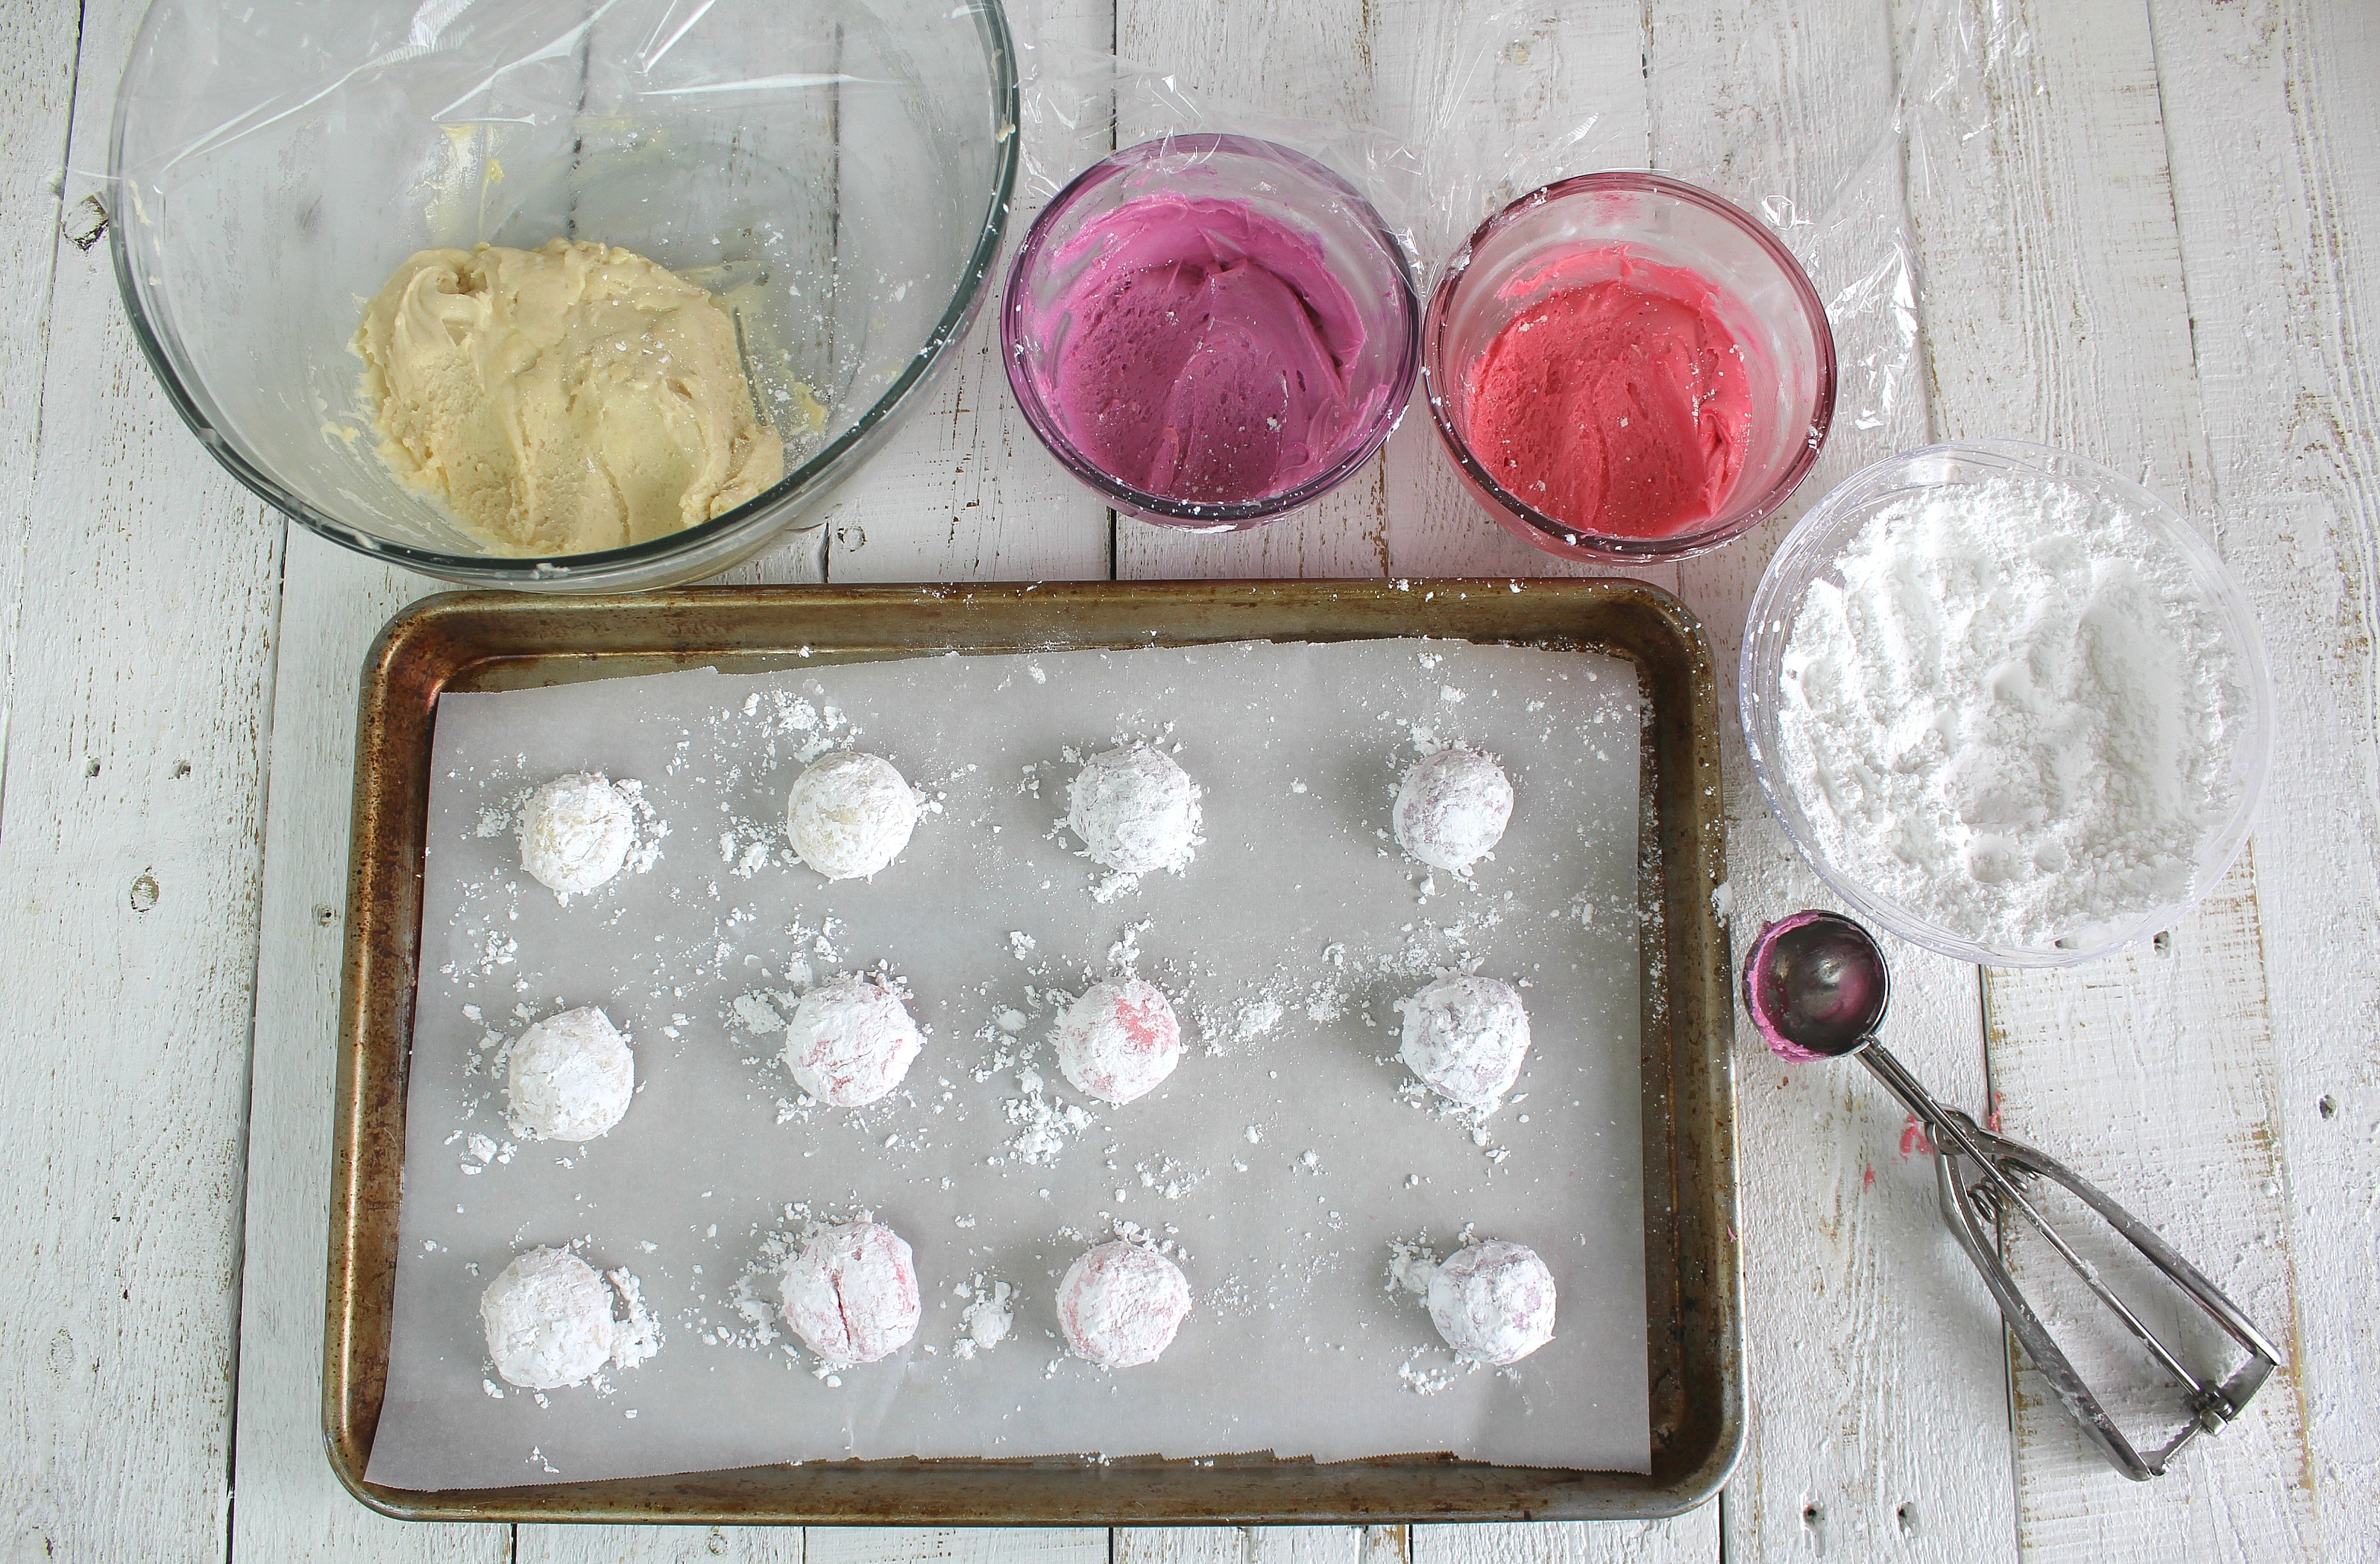 Roll dough into balls and coat in powdered sugar then place on cookie sheet.